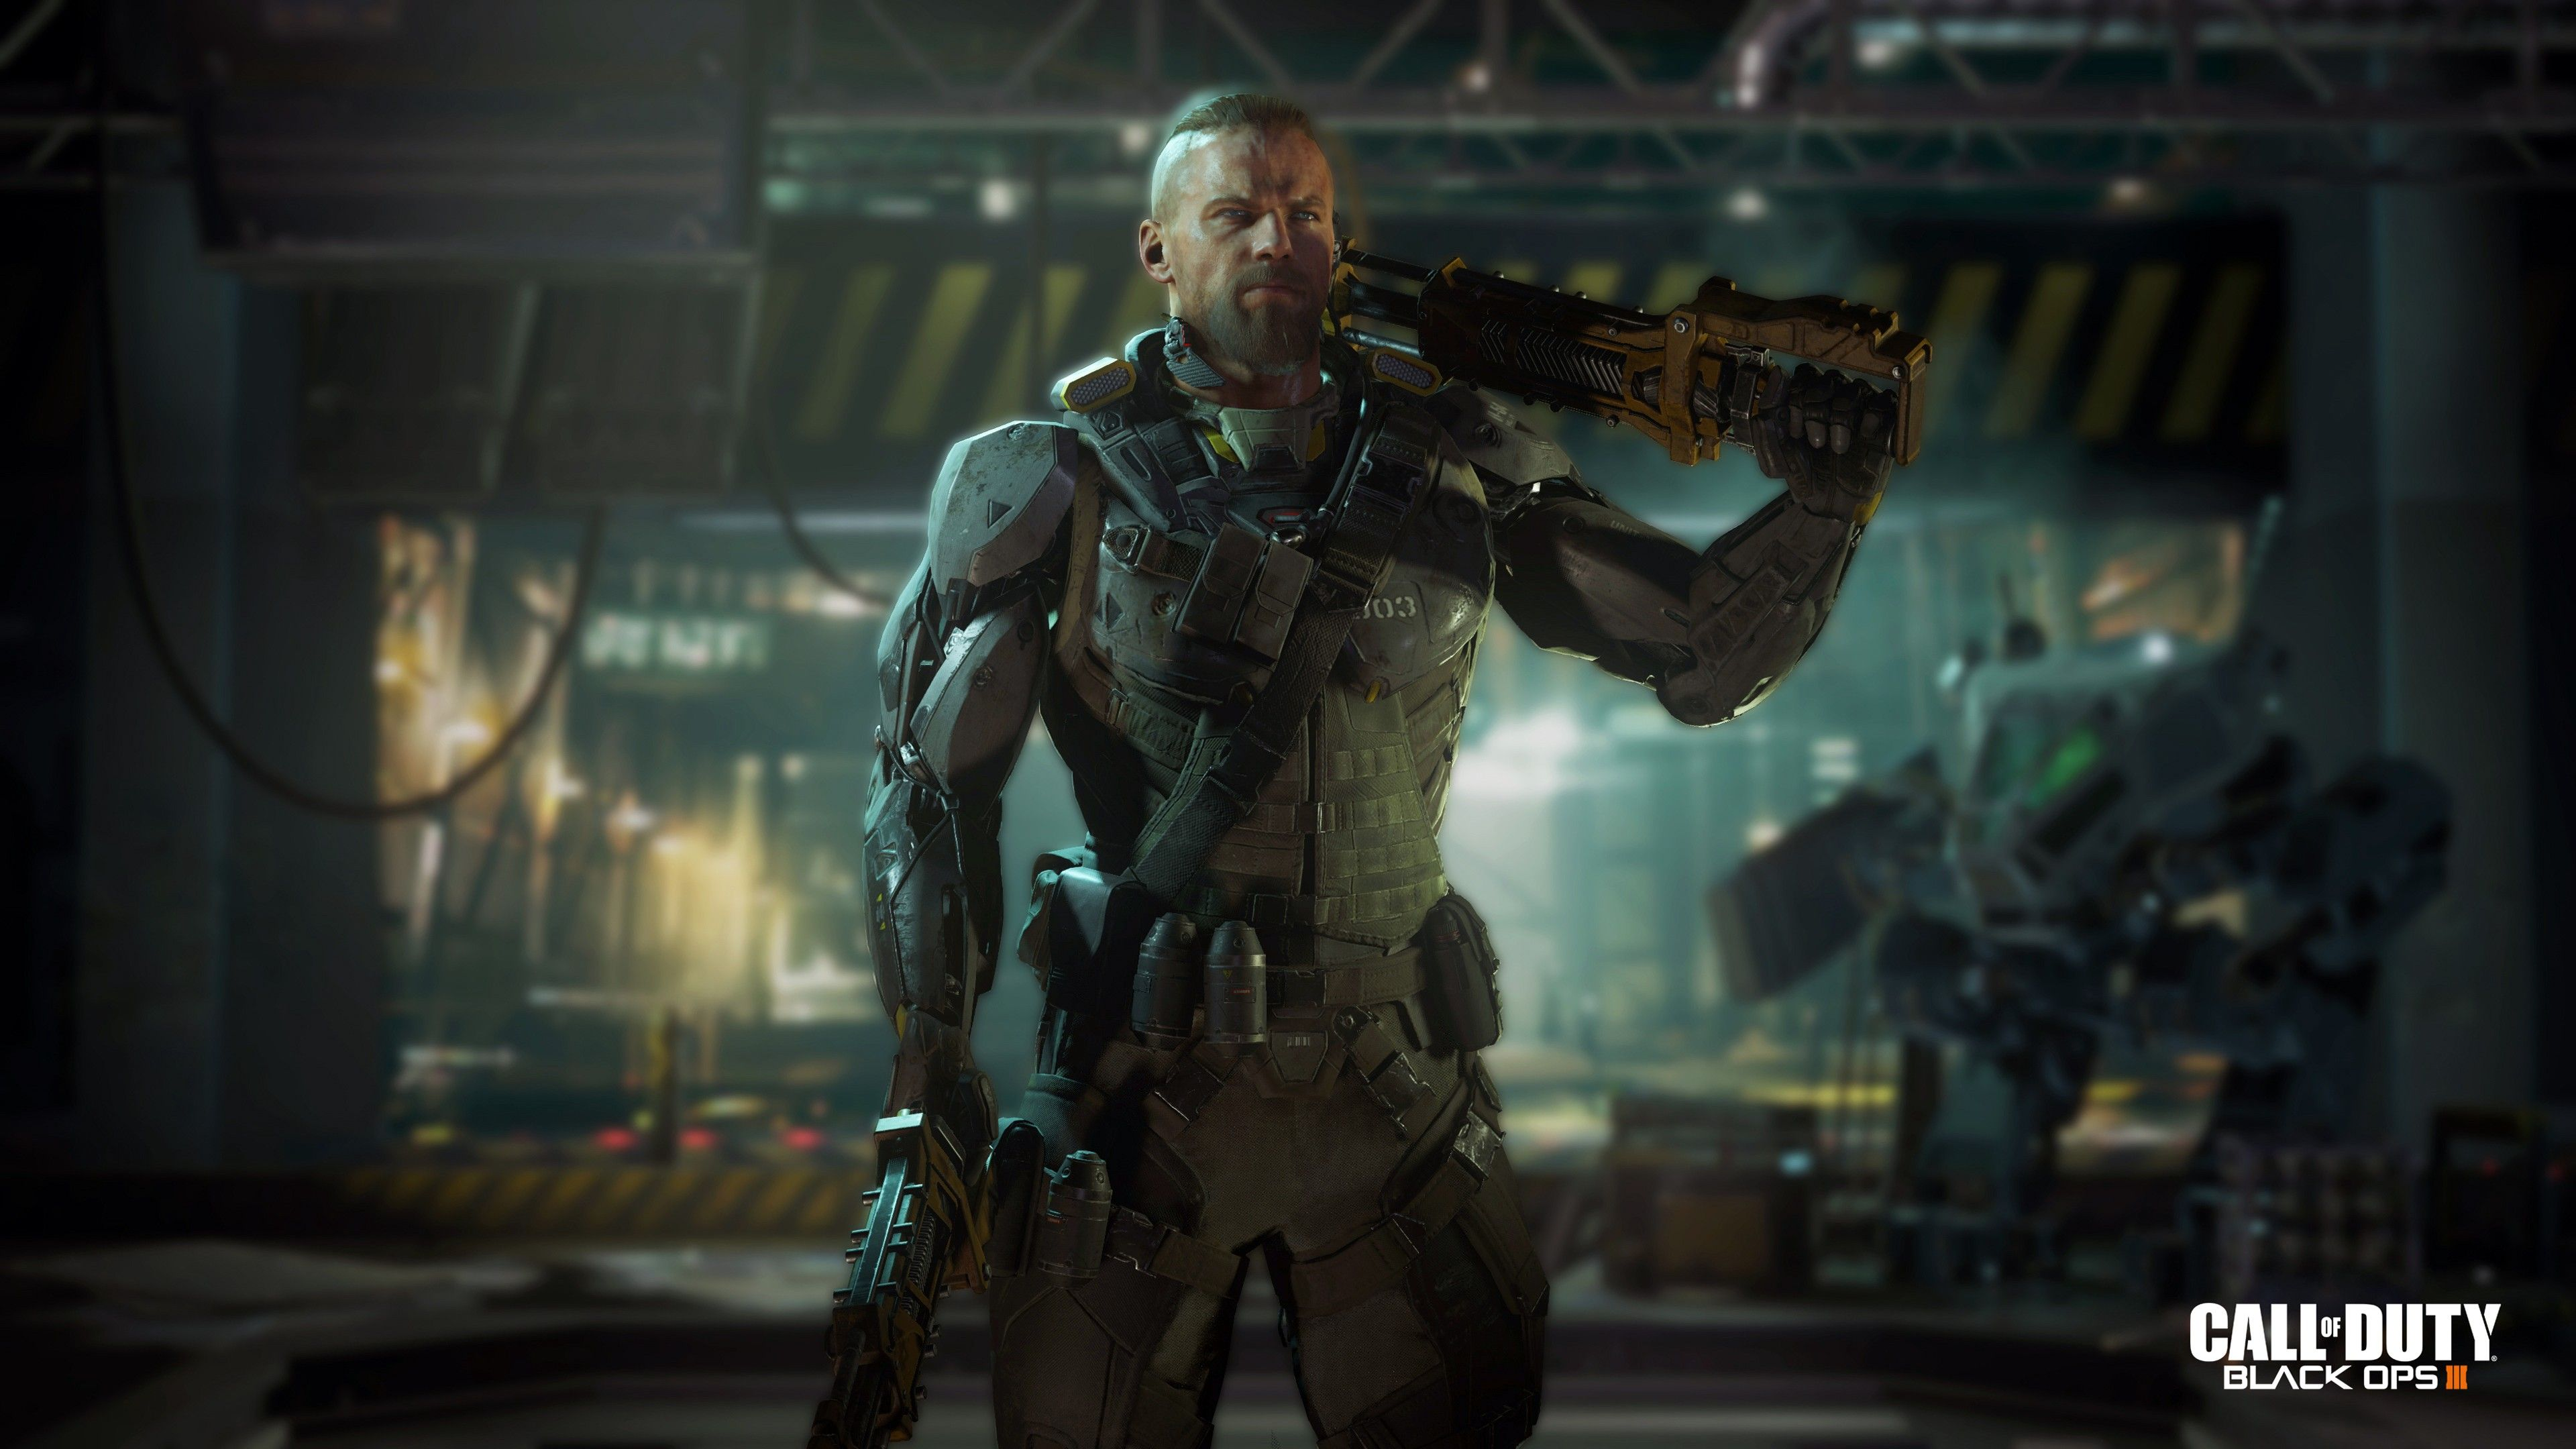 Call Of Duty Black Ops 3 Wallpapers Hd Wallpapers Call Of Duty Black Ops Iii Call Of Duty Black Ops 3 Call Duty Black Ops